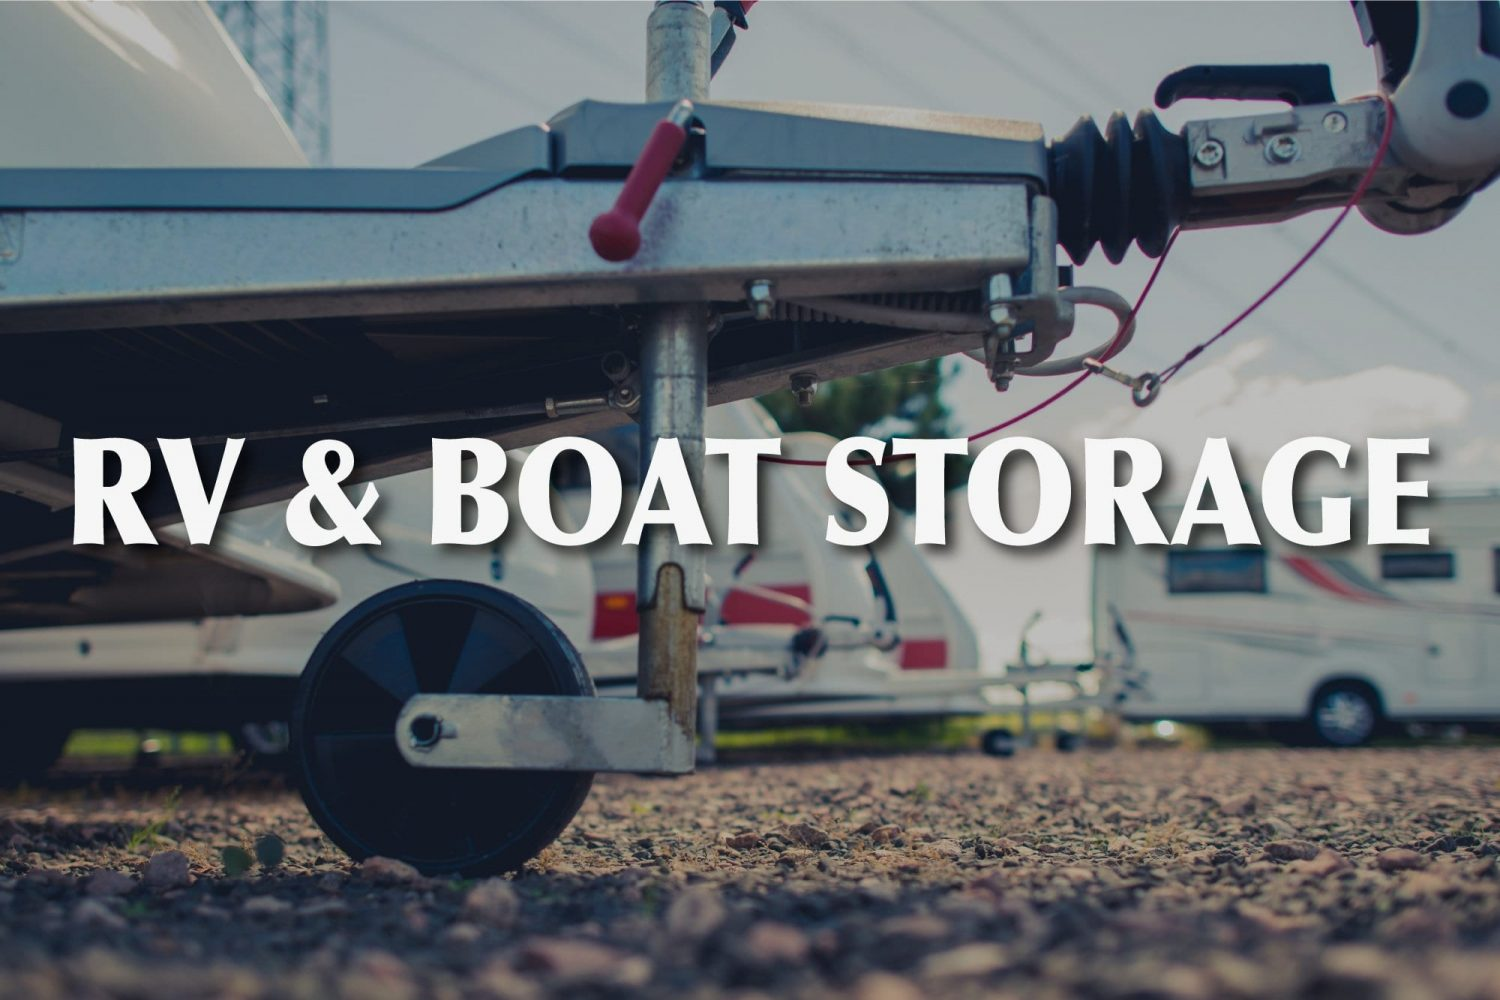 RV & Boat Storage in Central Oregon